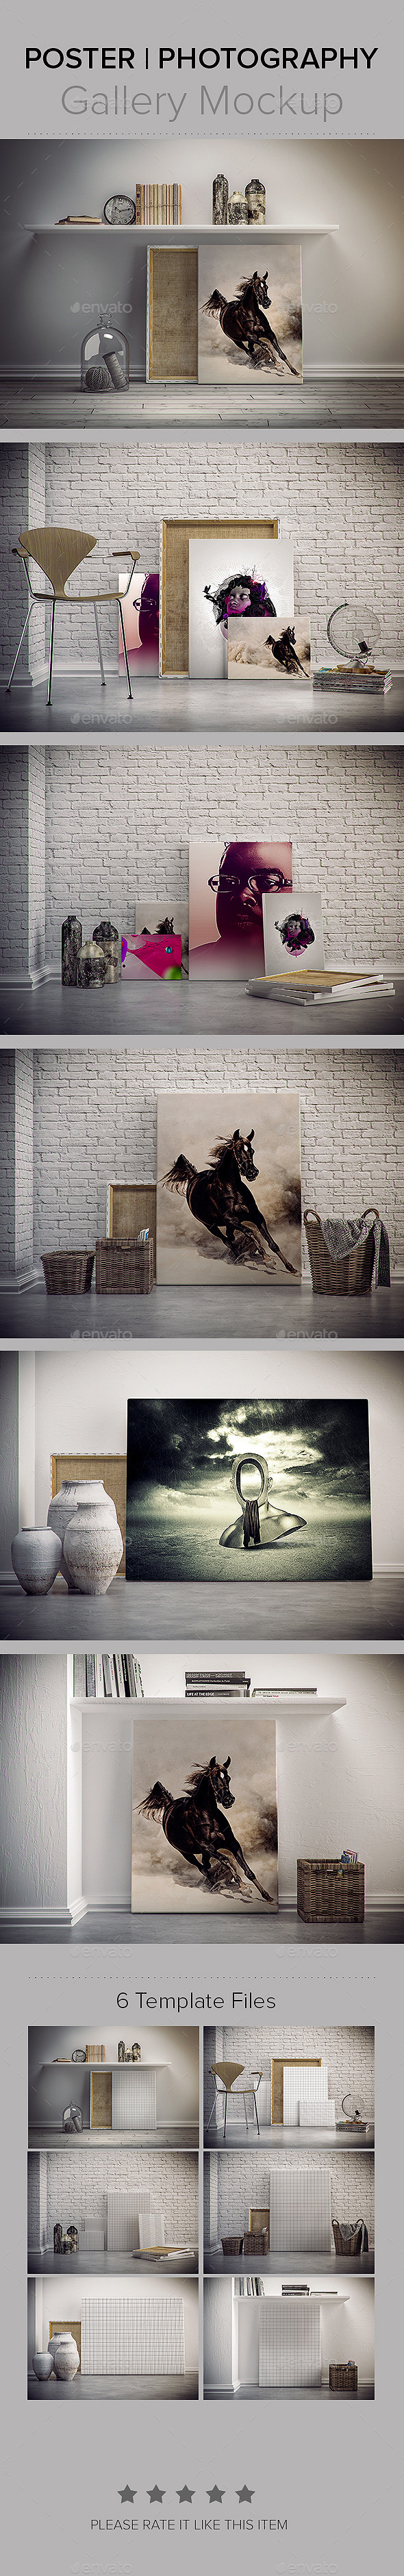 Photography / Poster GalleryMockup - Posters Print